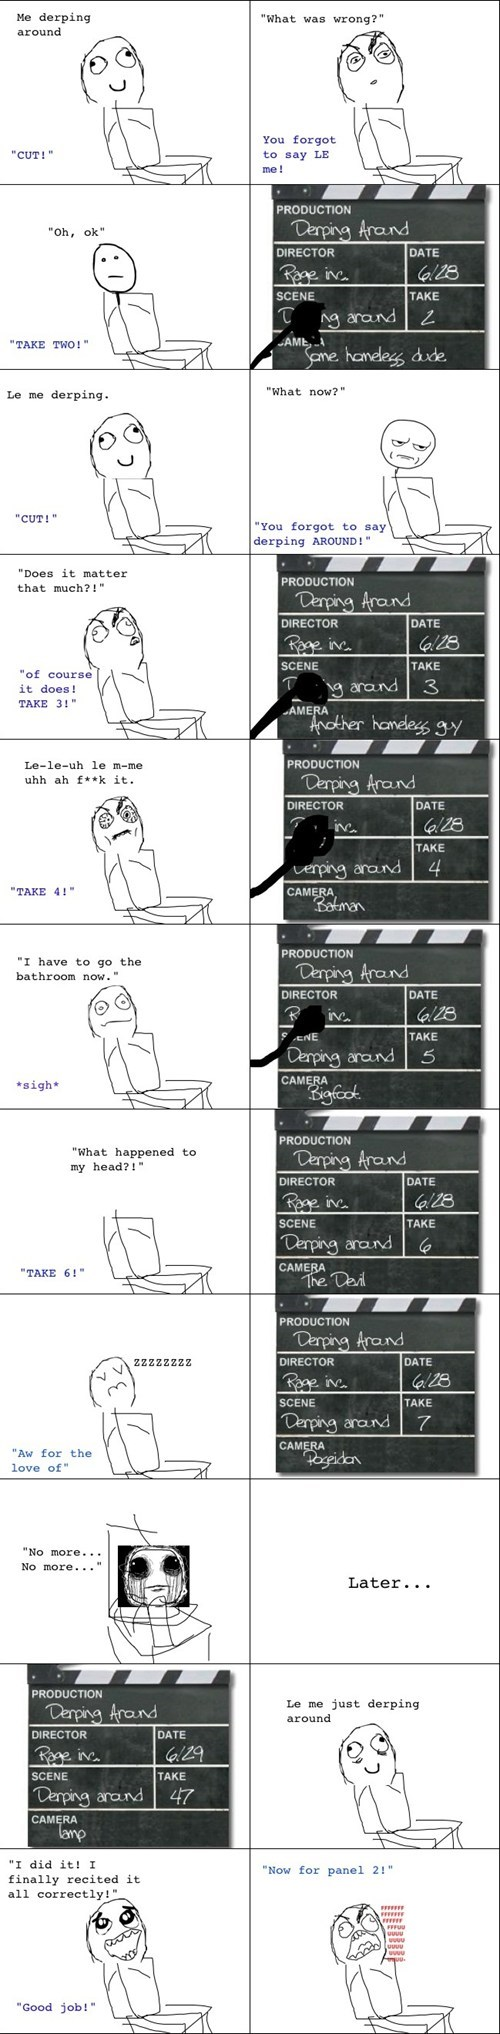 director Movie making rage comics derping around - 7616526848